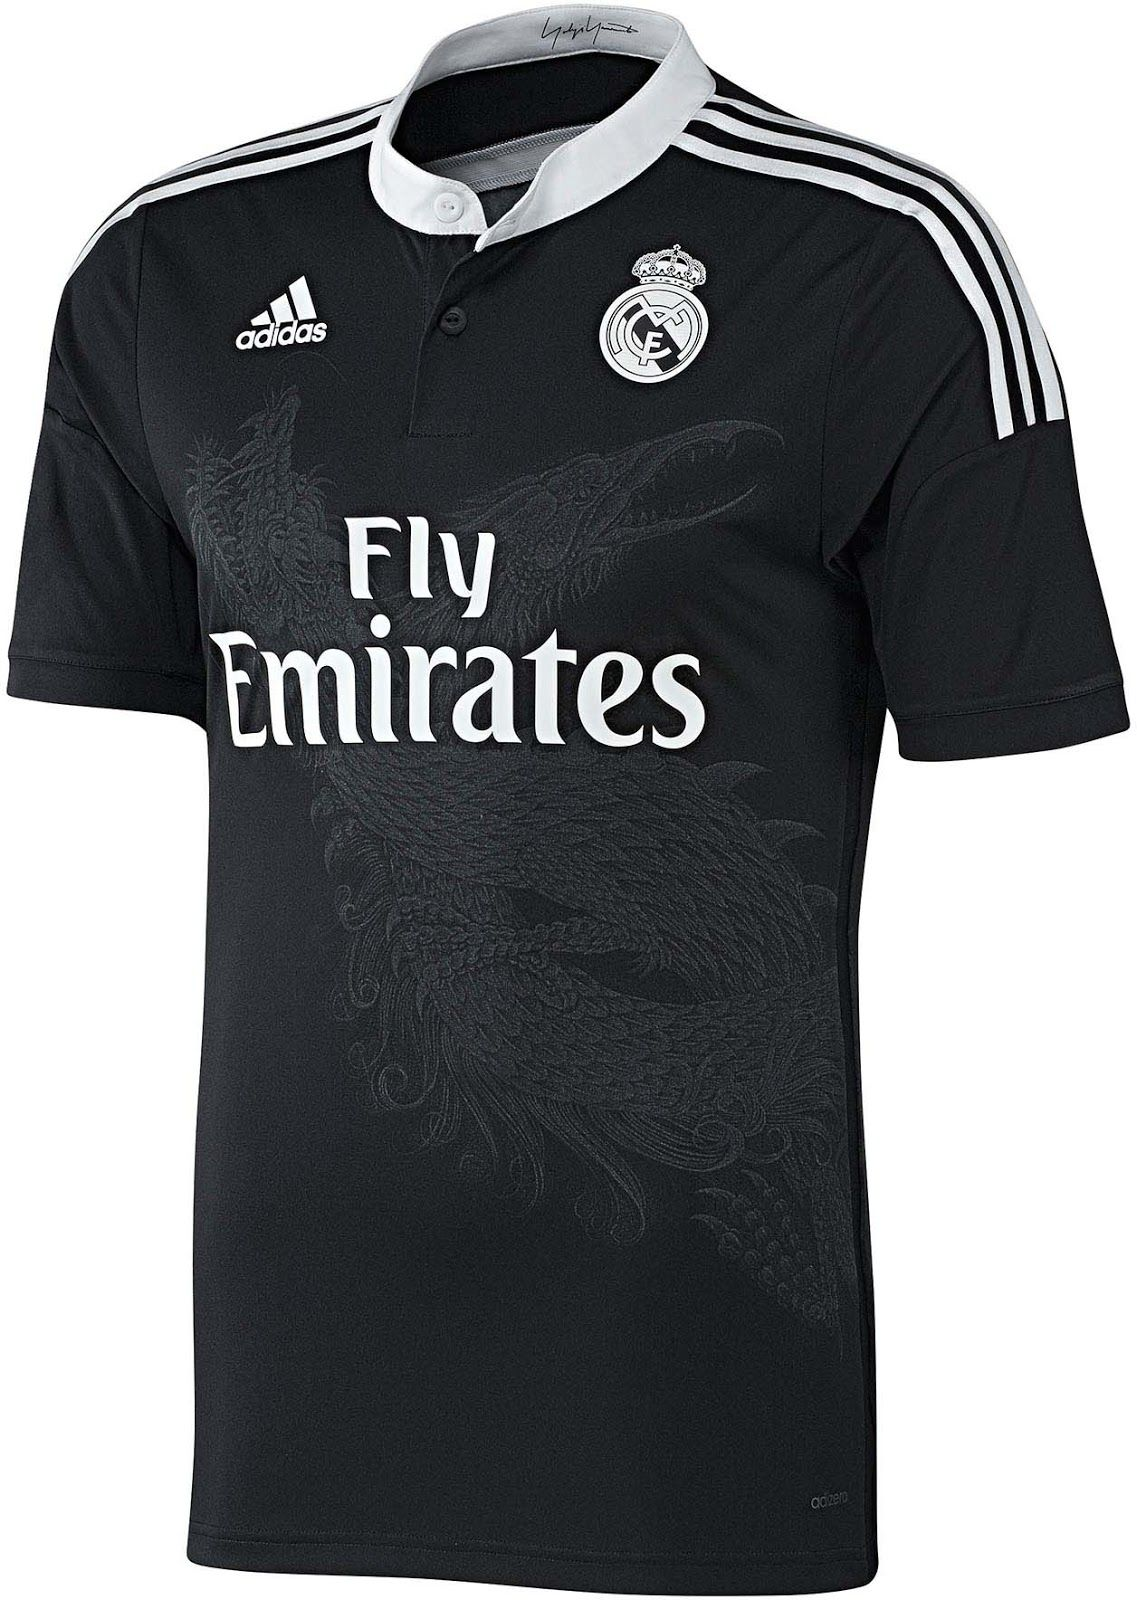 6b9a6255b Real Madrid Third Kit for 2014-15 Season | Real Madrid | Real madrid third  kit, Real madrid shirt, Adidas